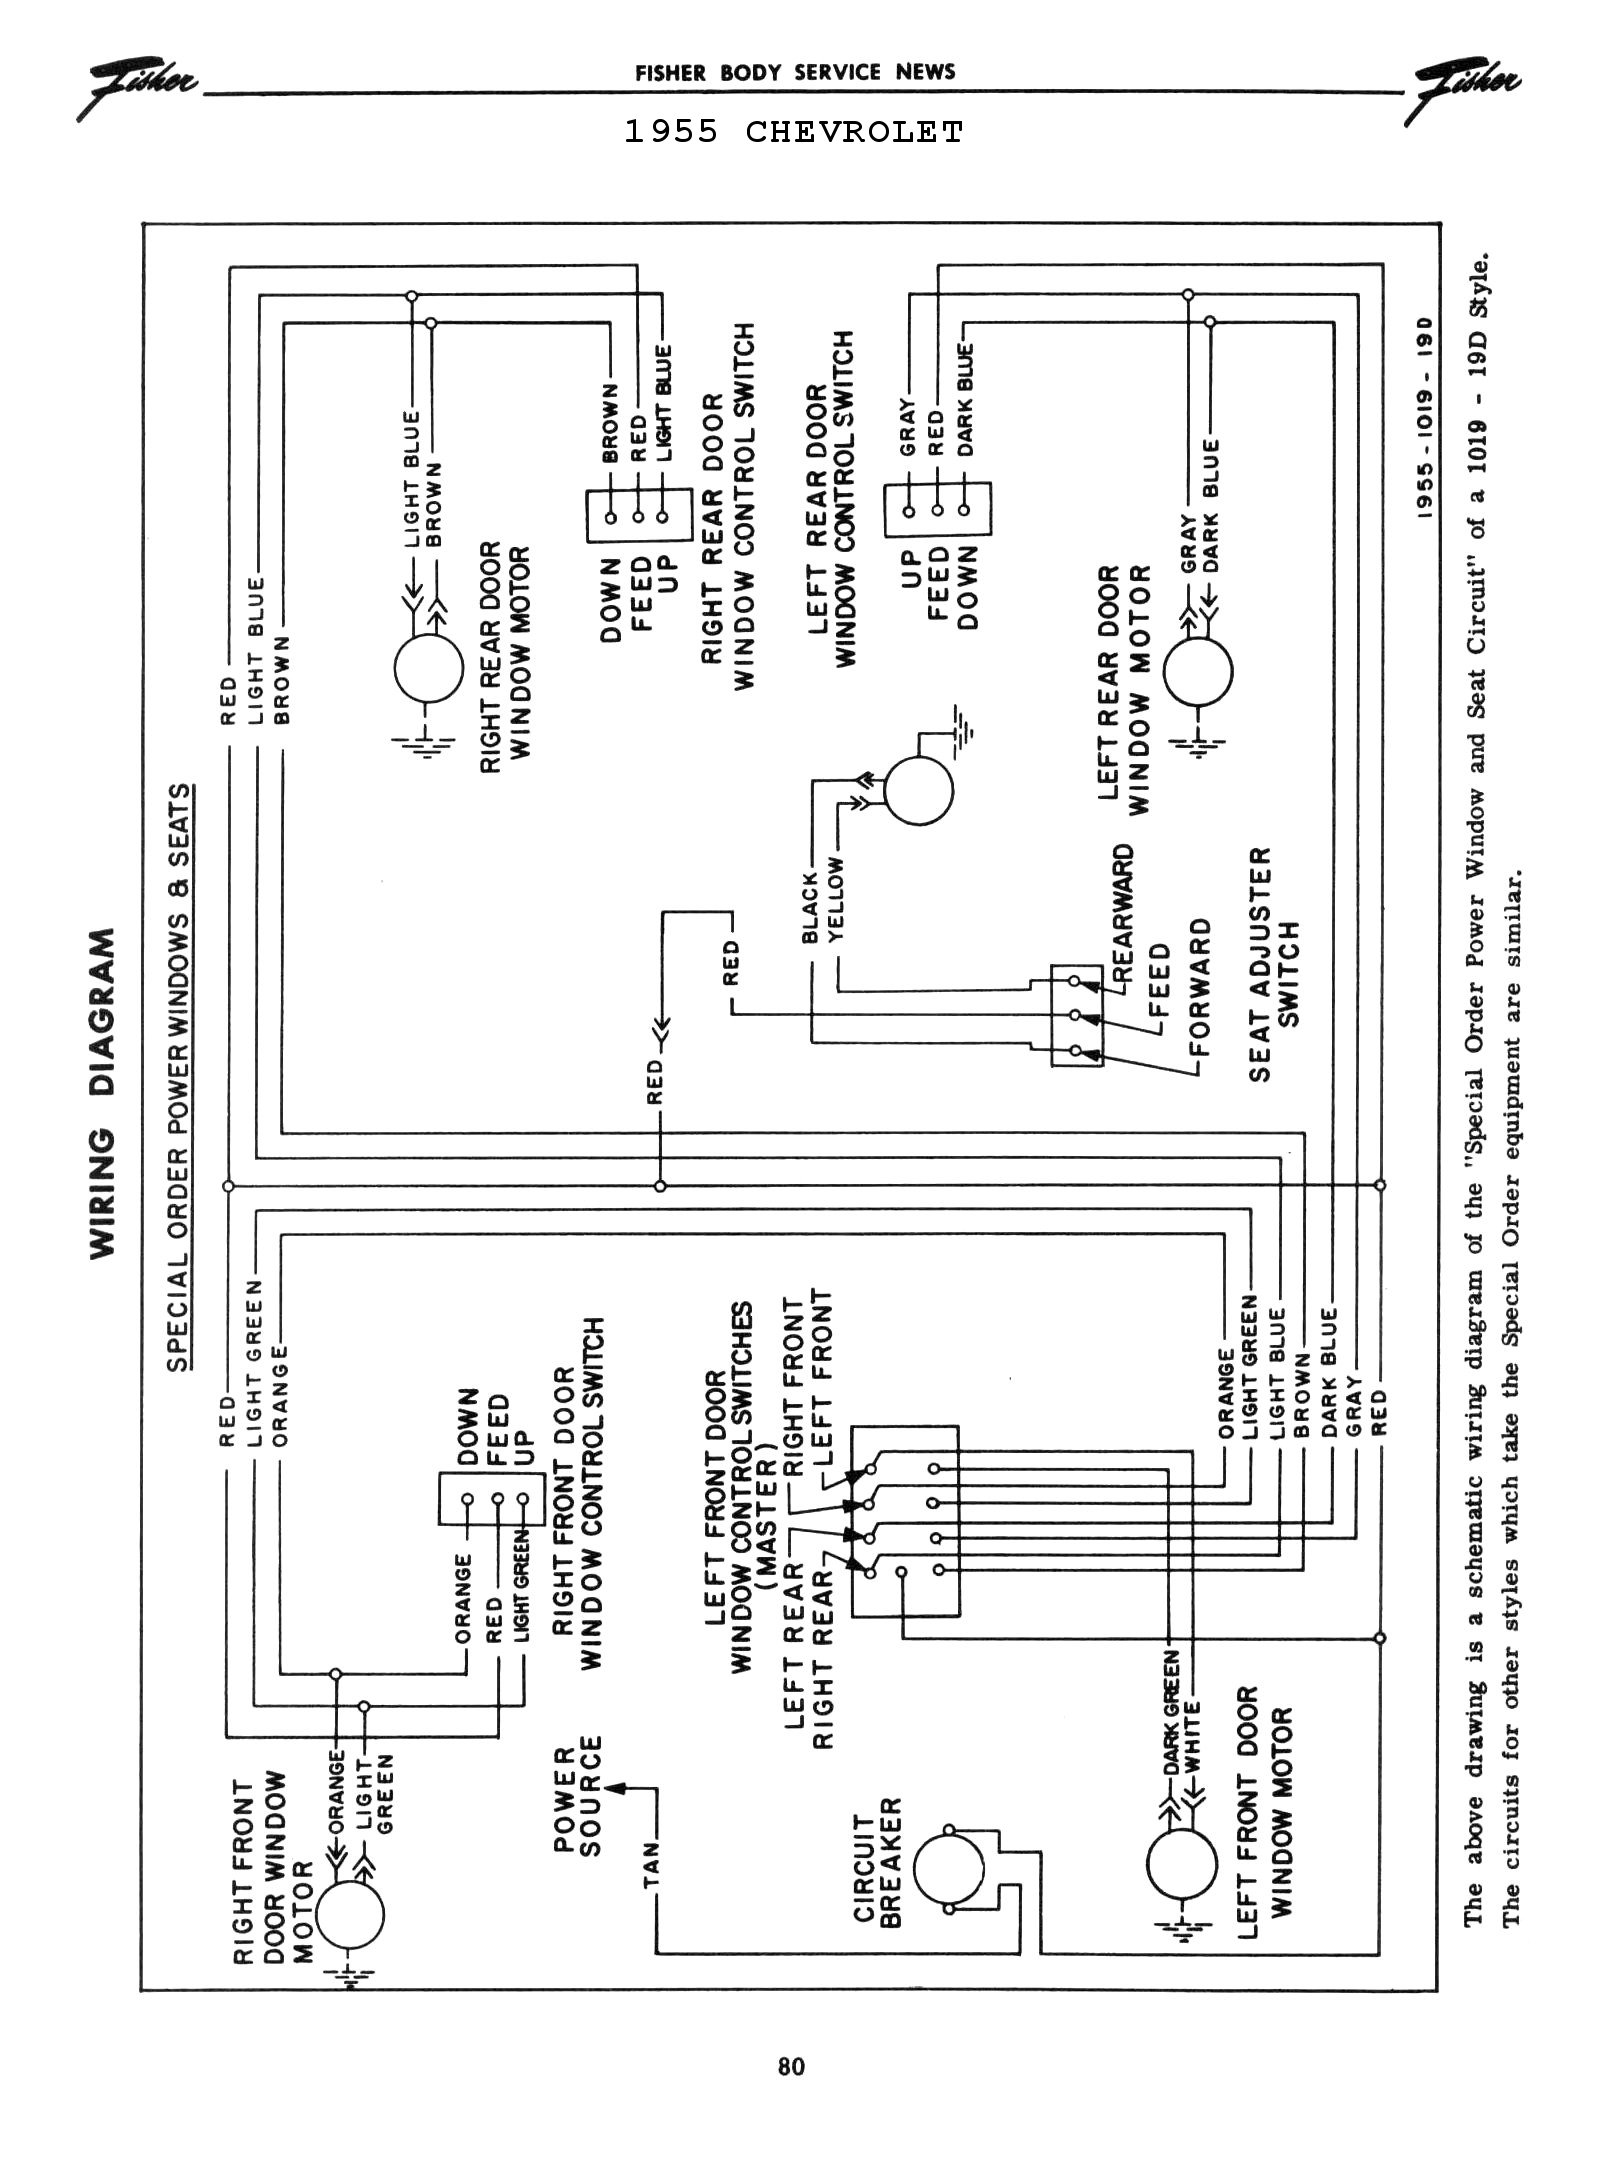 55fsn140180 chevy wiring diagrams 2004 Chevy Trailblazer Wiring-Diagram at soozxer.org